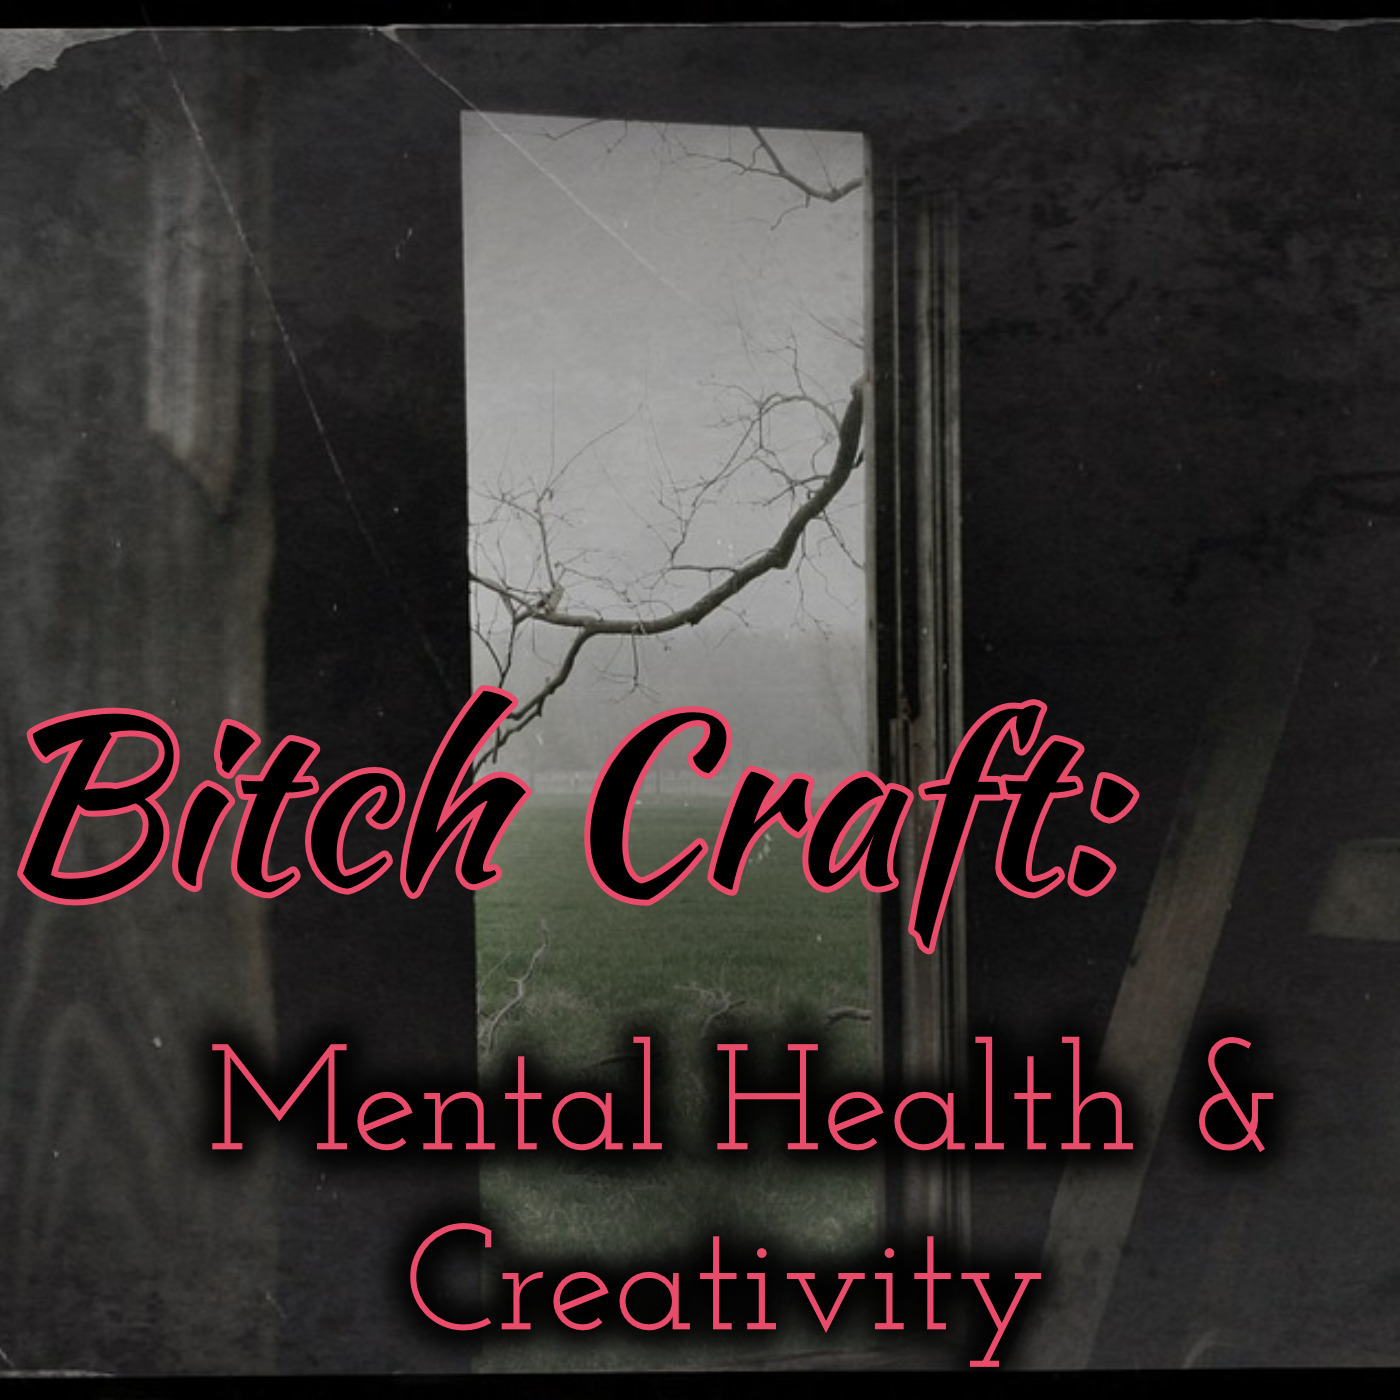 Mental Health & Creativity